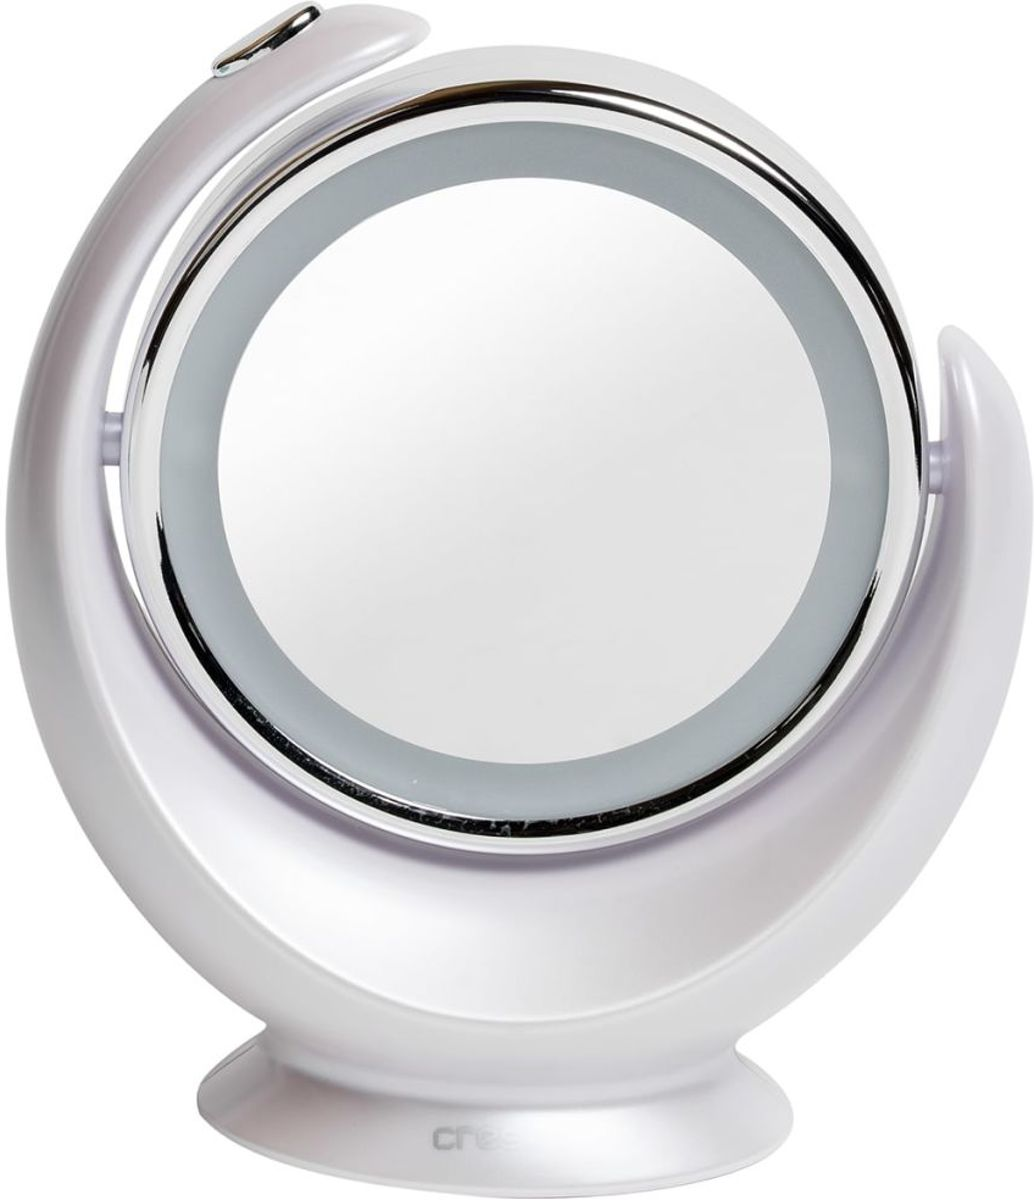 KTS330 COSMETIC MIRROR